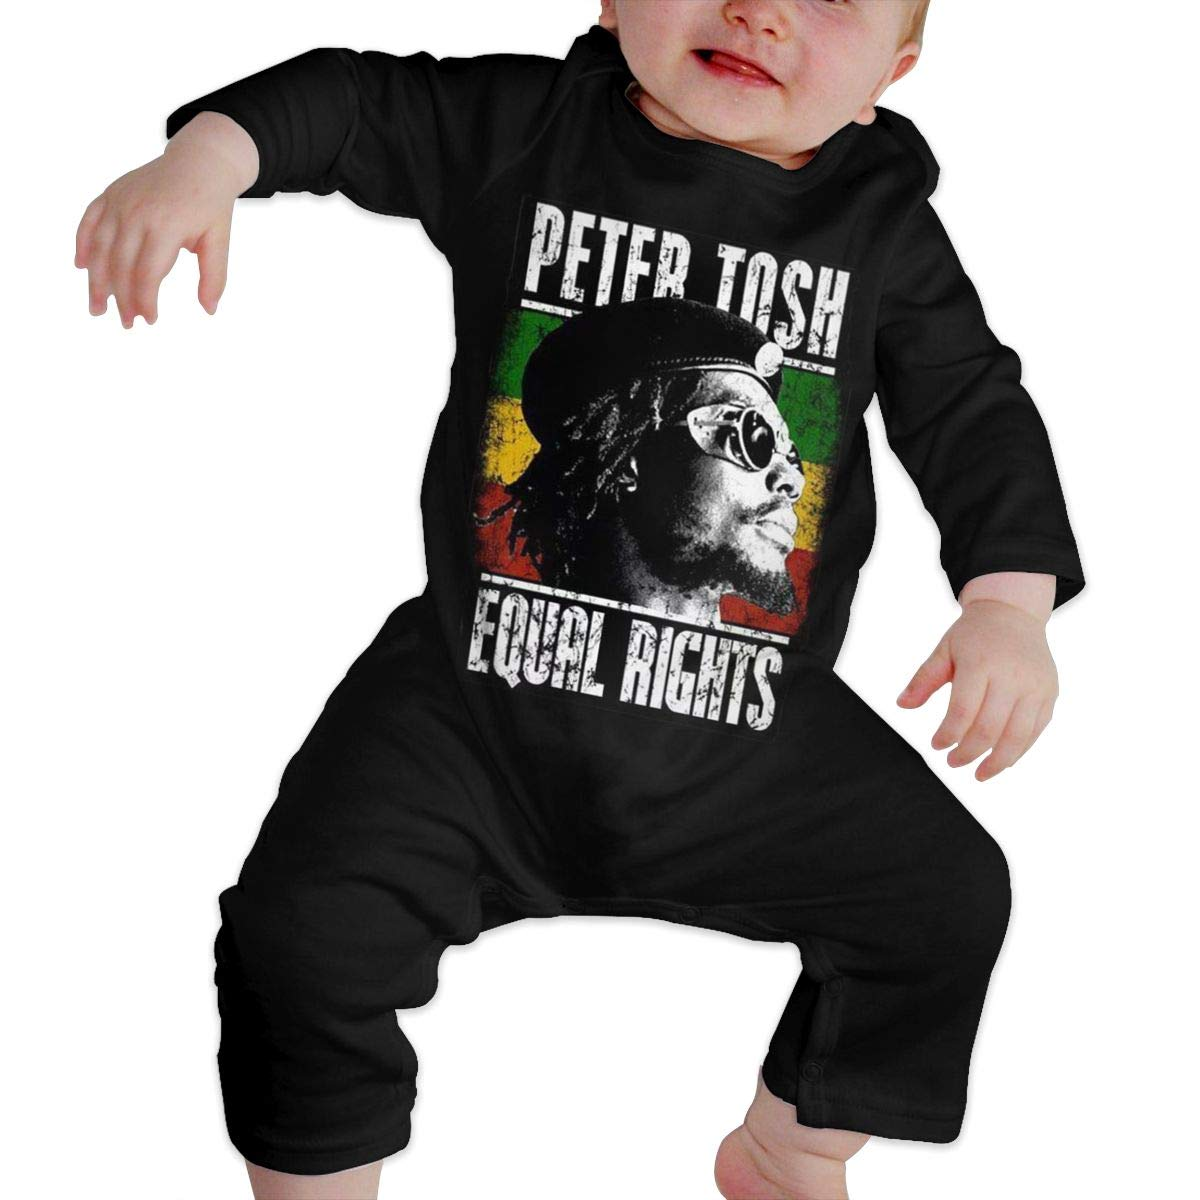 Kids Baby Long Sleeve Romper Peter-Tosh-Logo Unisex Cotton Cute Jumpsuit Baby Crawler Clothes